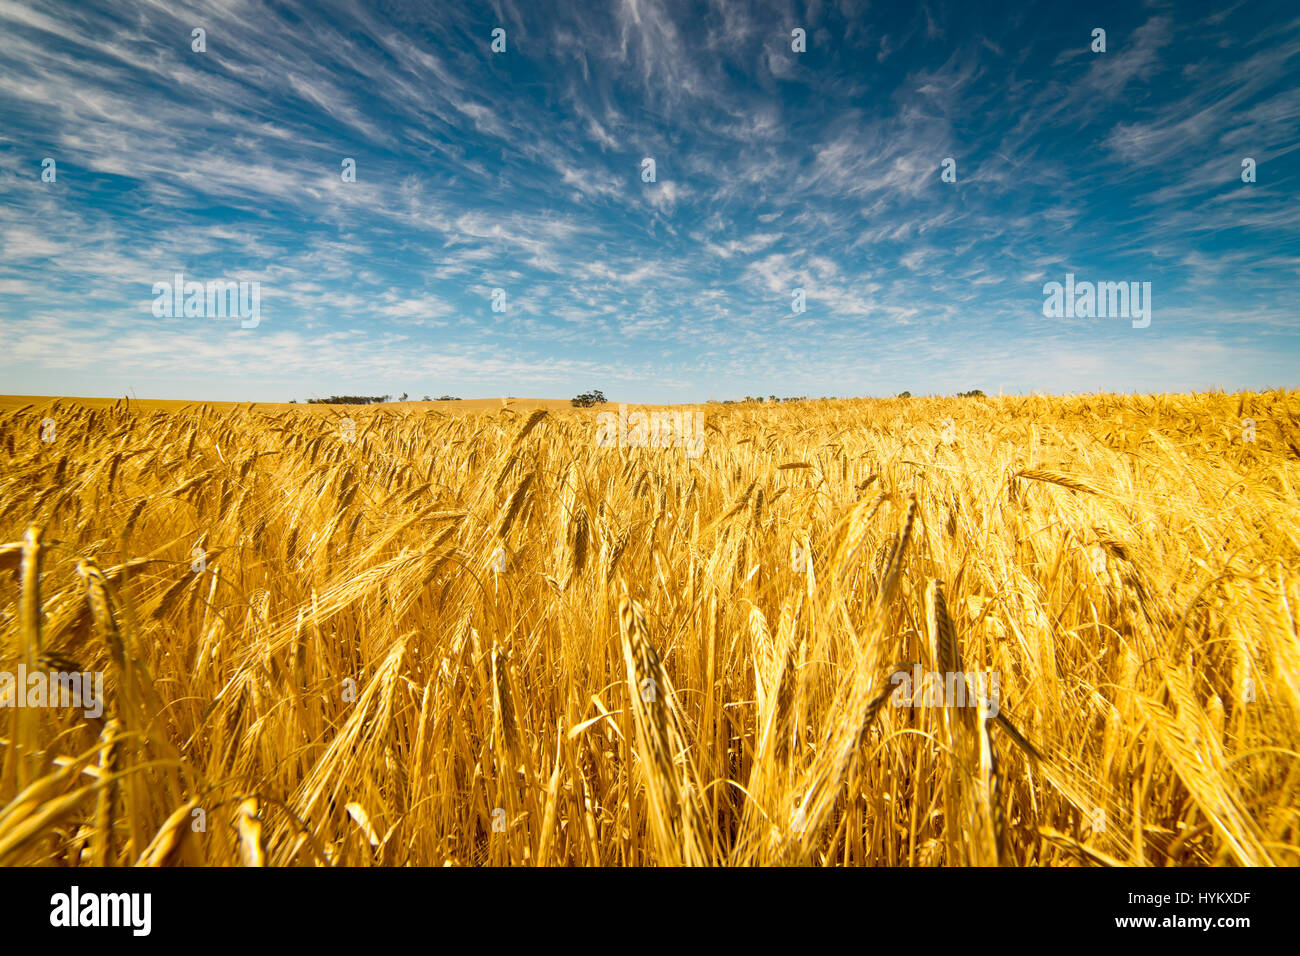 Field of Golden wheat under the blue sky and clouds - Stock Image